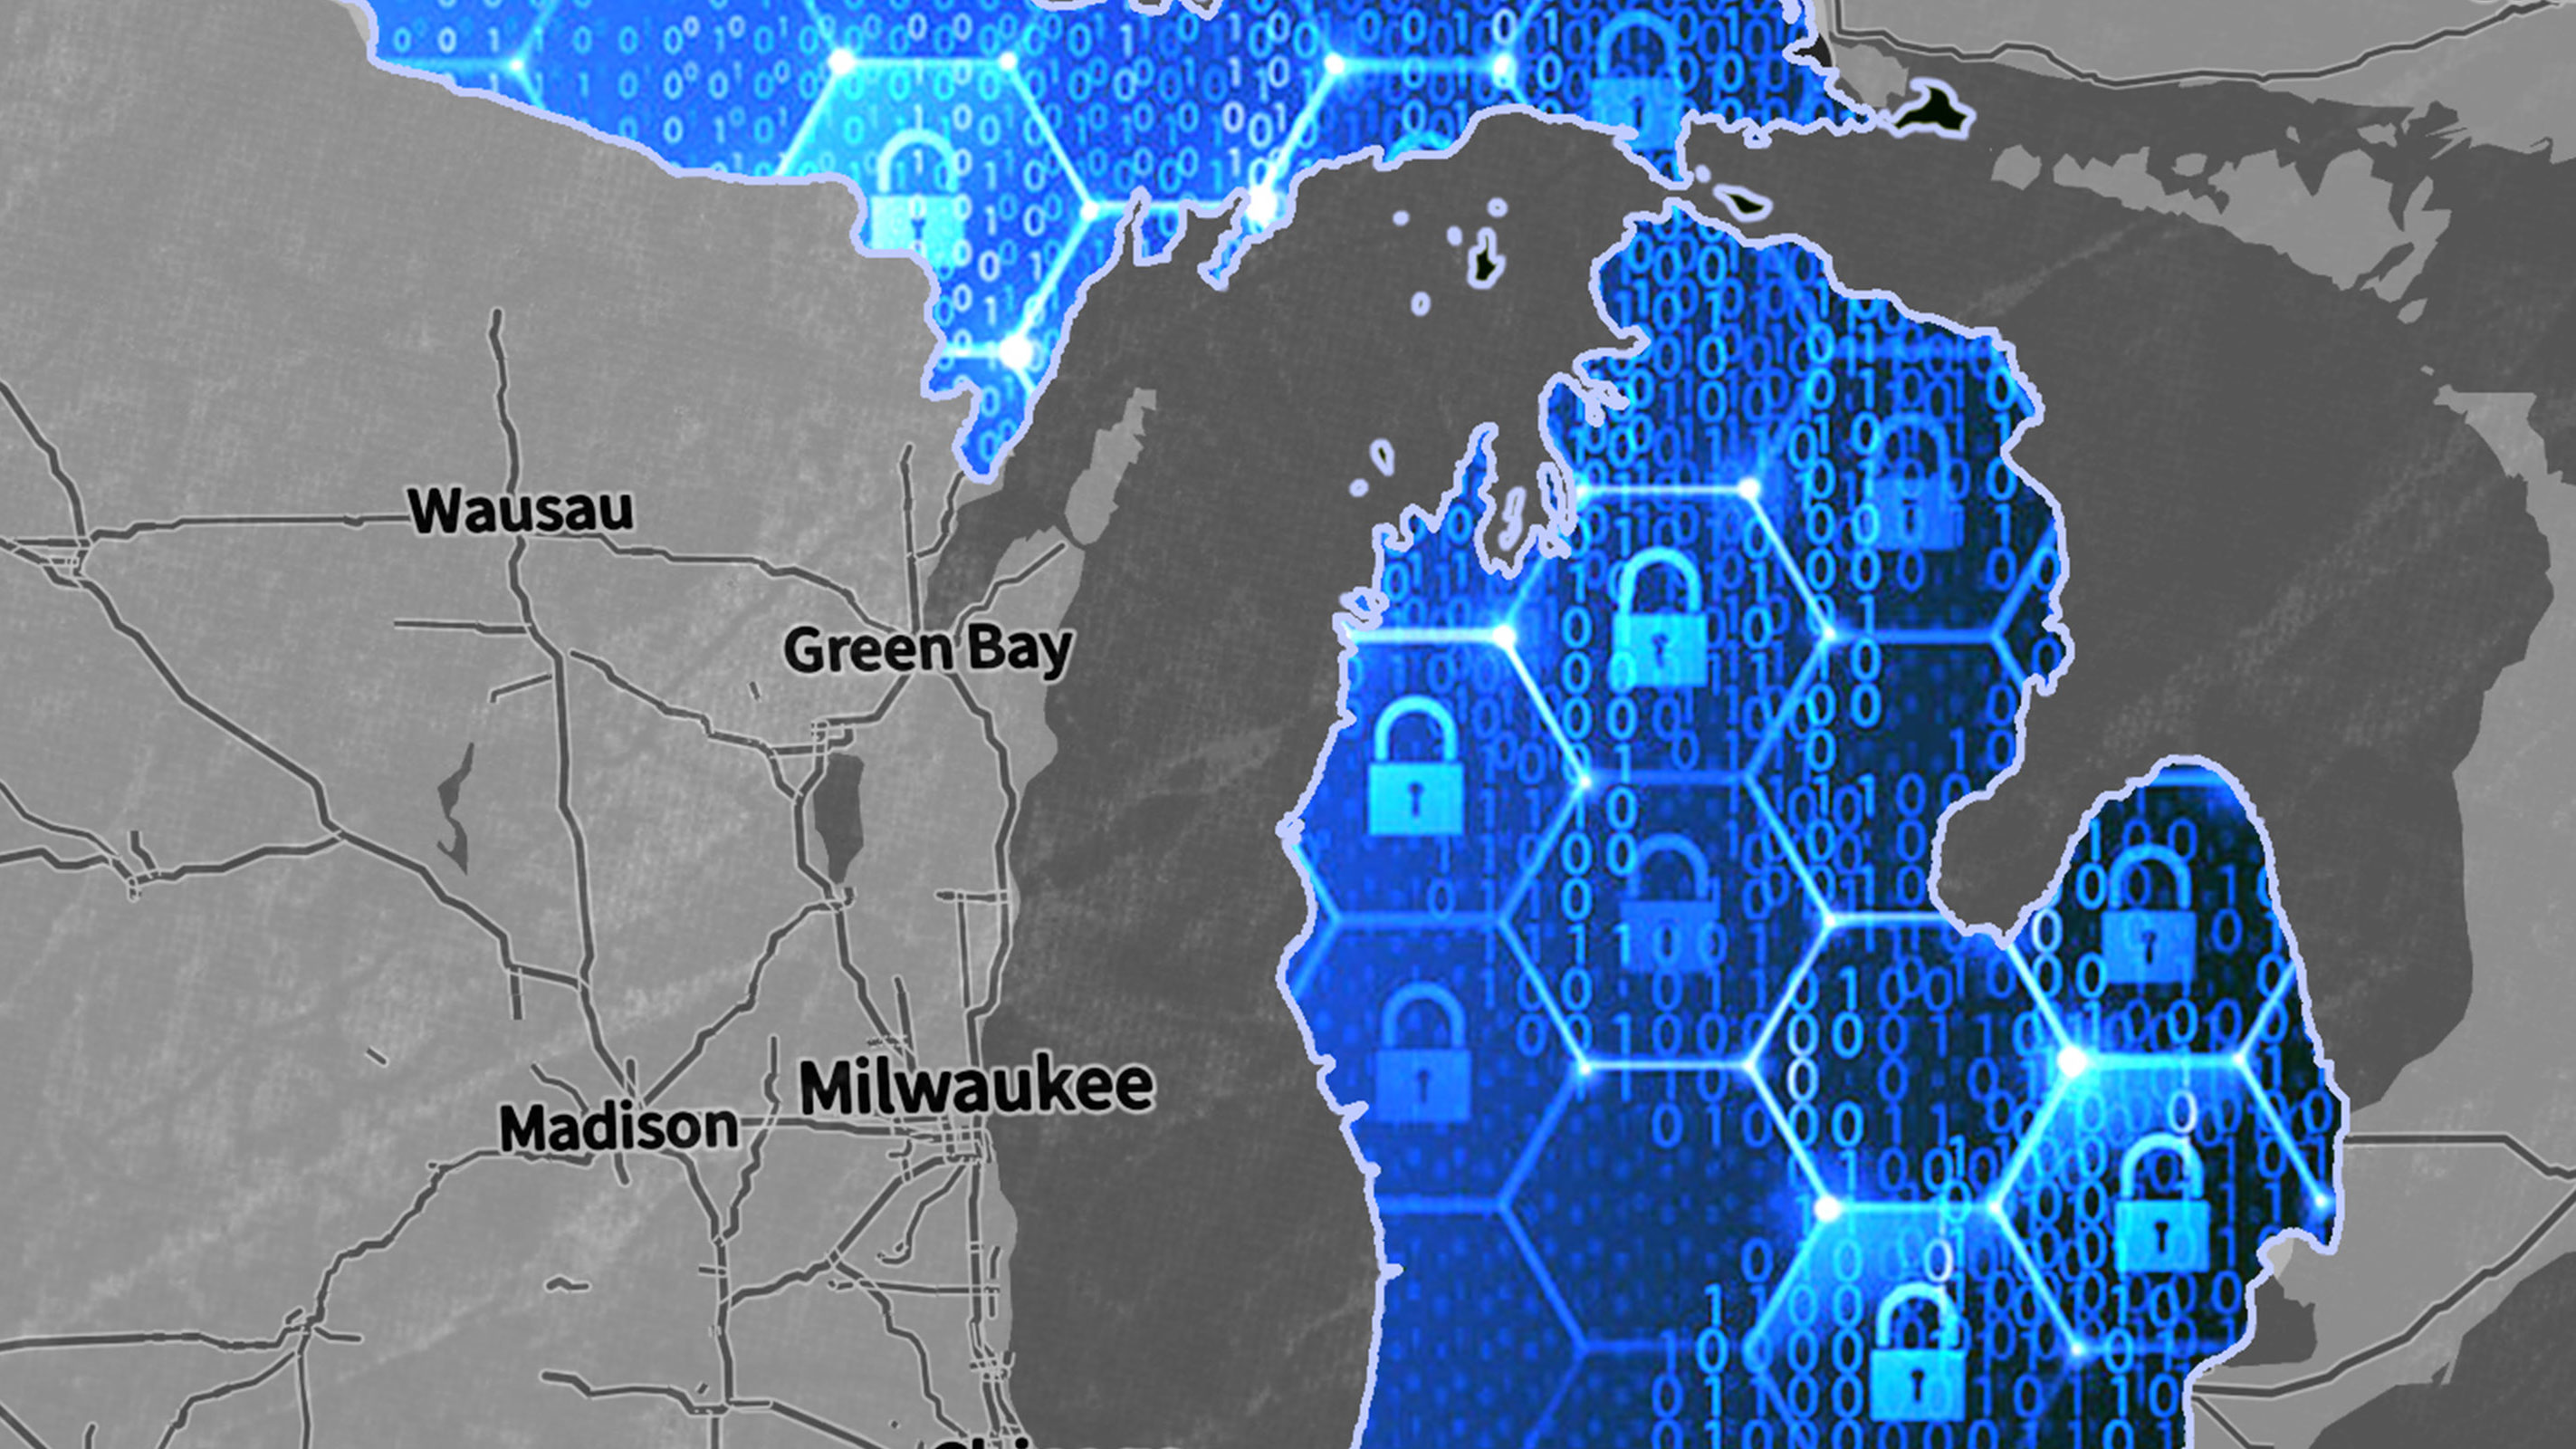 Cyber Michigan